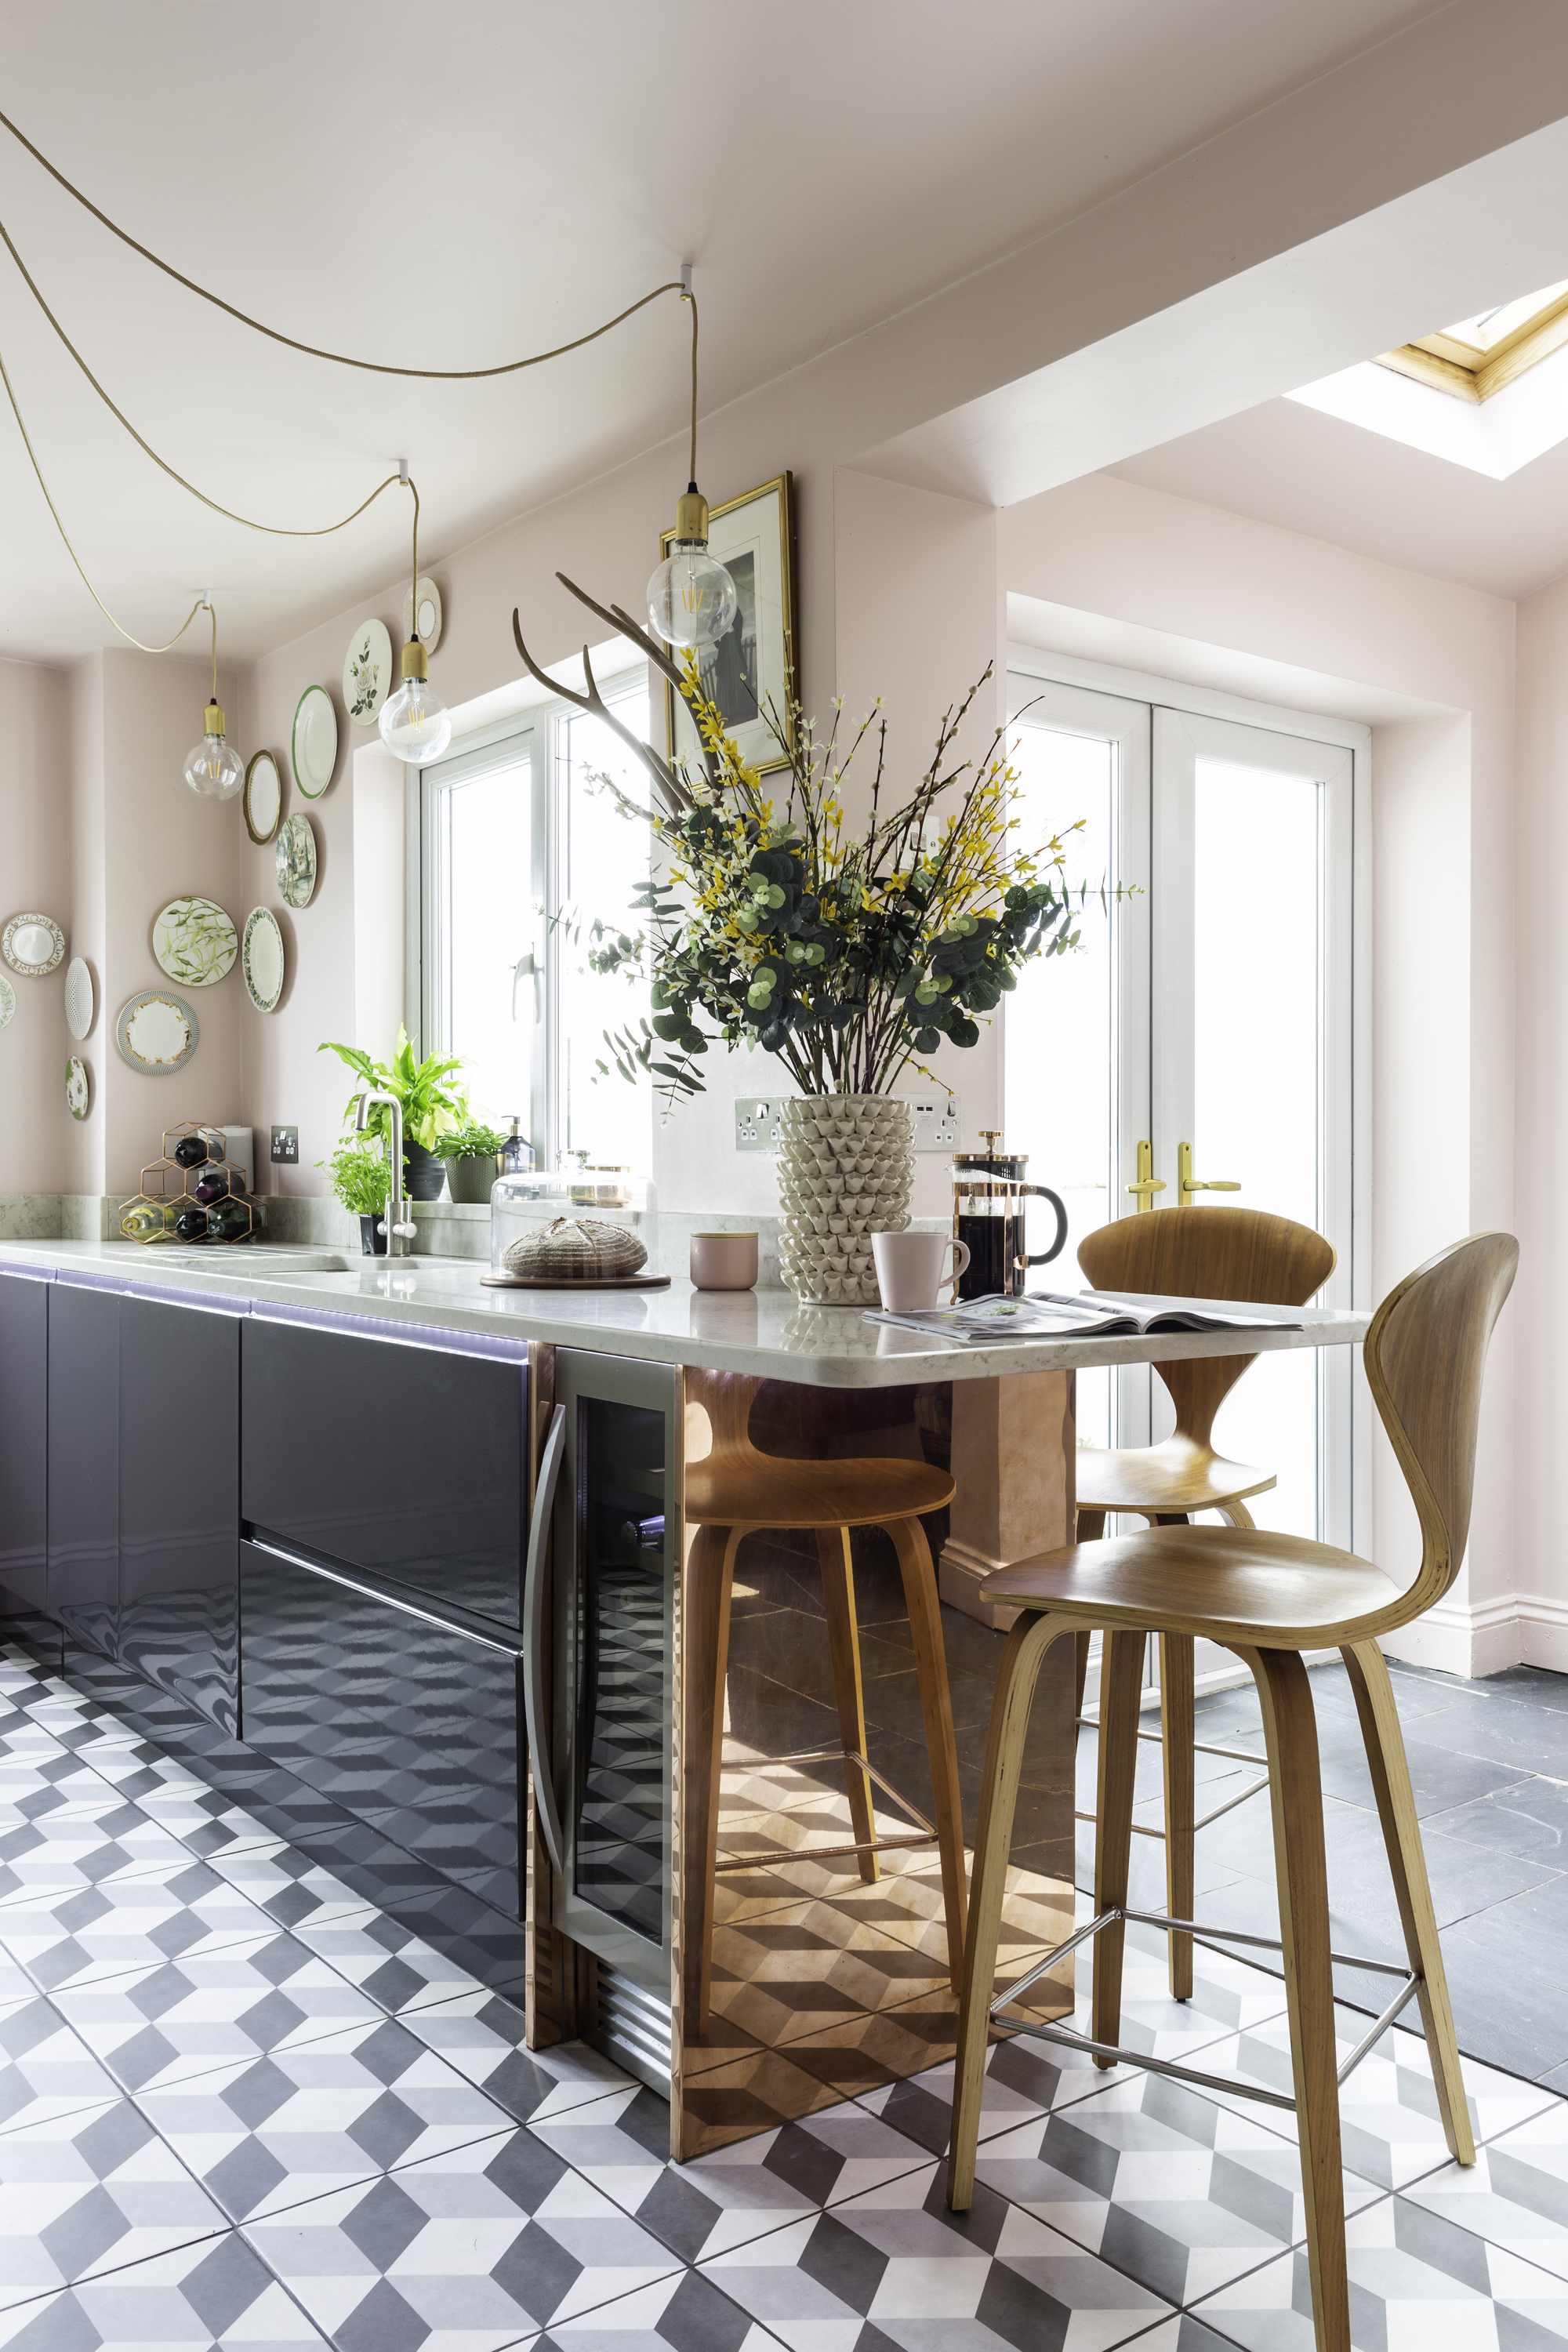 10 Kitchen Interior Design Tips From An Expert Create Your Dream Space Real Homes